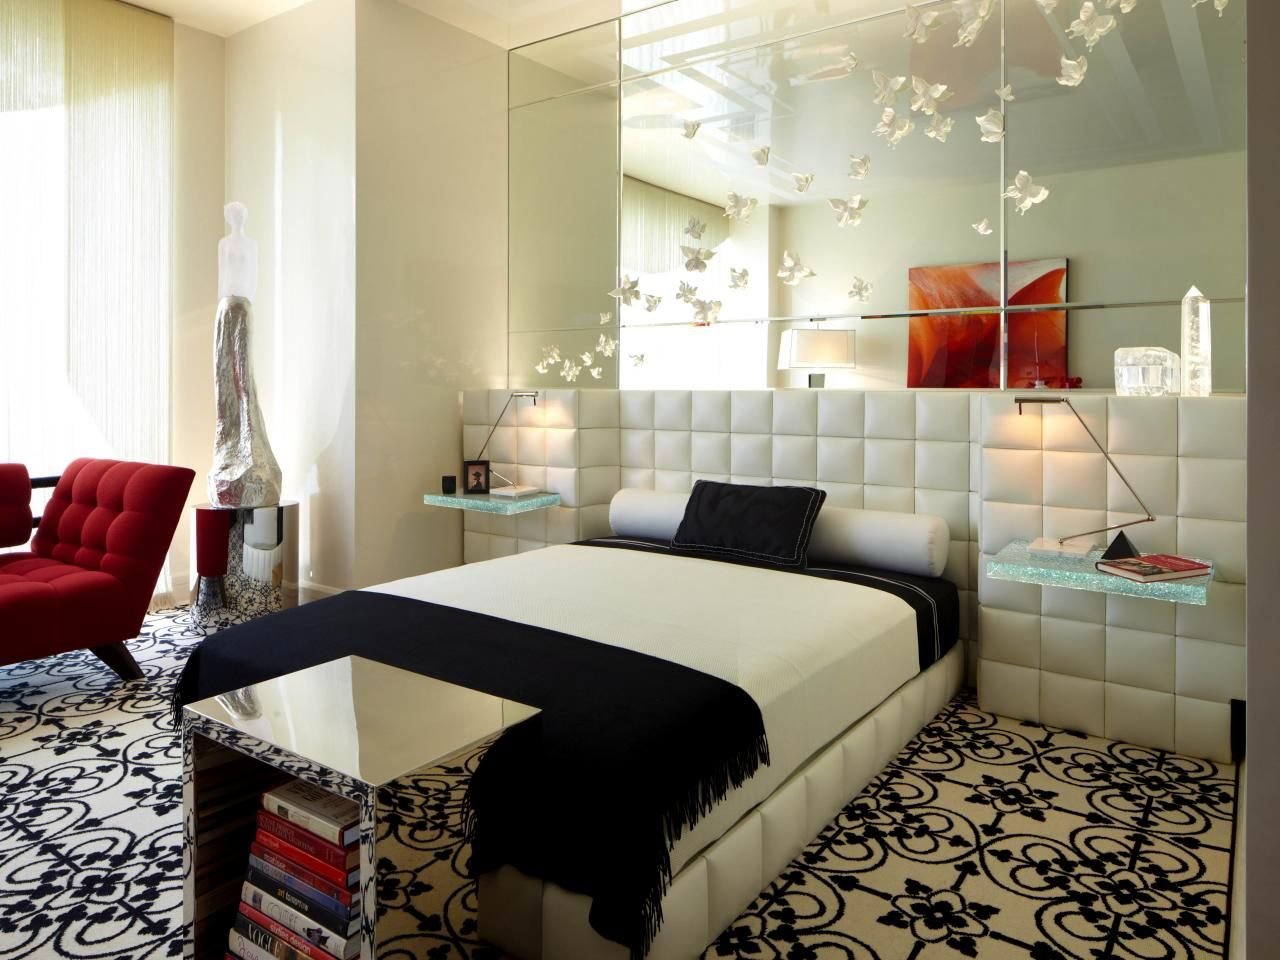 17 Best images about Bedroom on Pinterest   Canopy curtains  Red bedrooms  and Red bedroom design. 17 Best images about Bedroom on Pinterest   Canopy curtains  Red